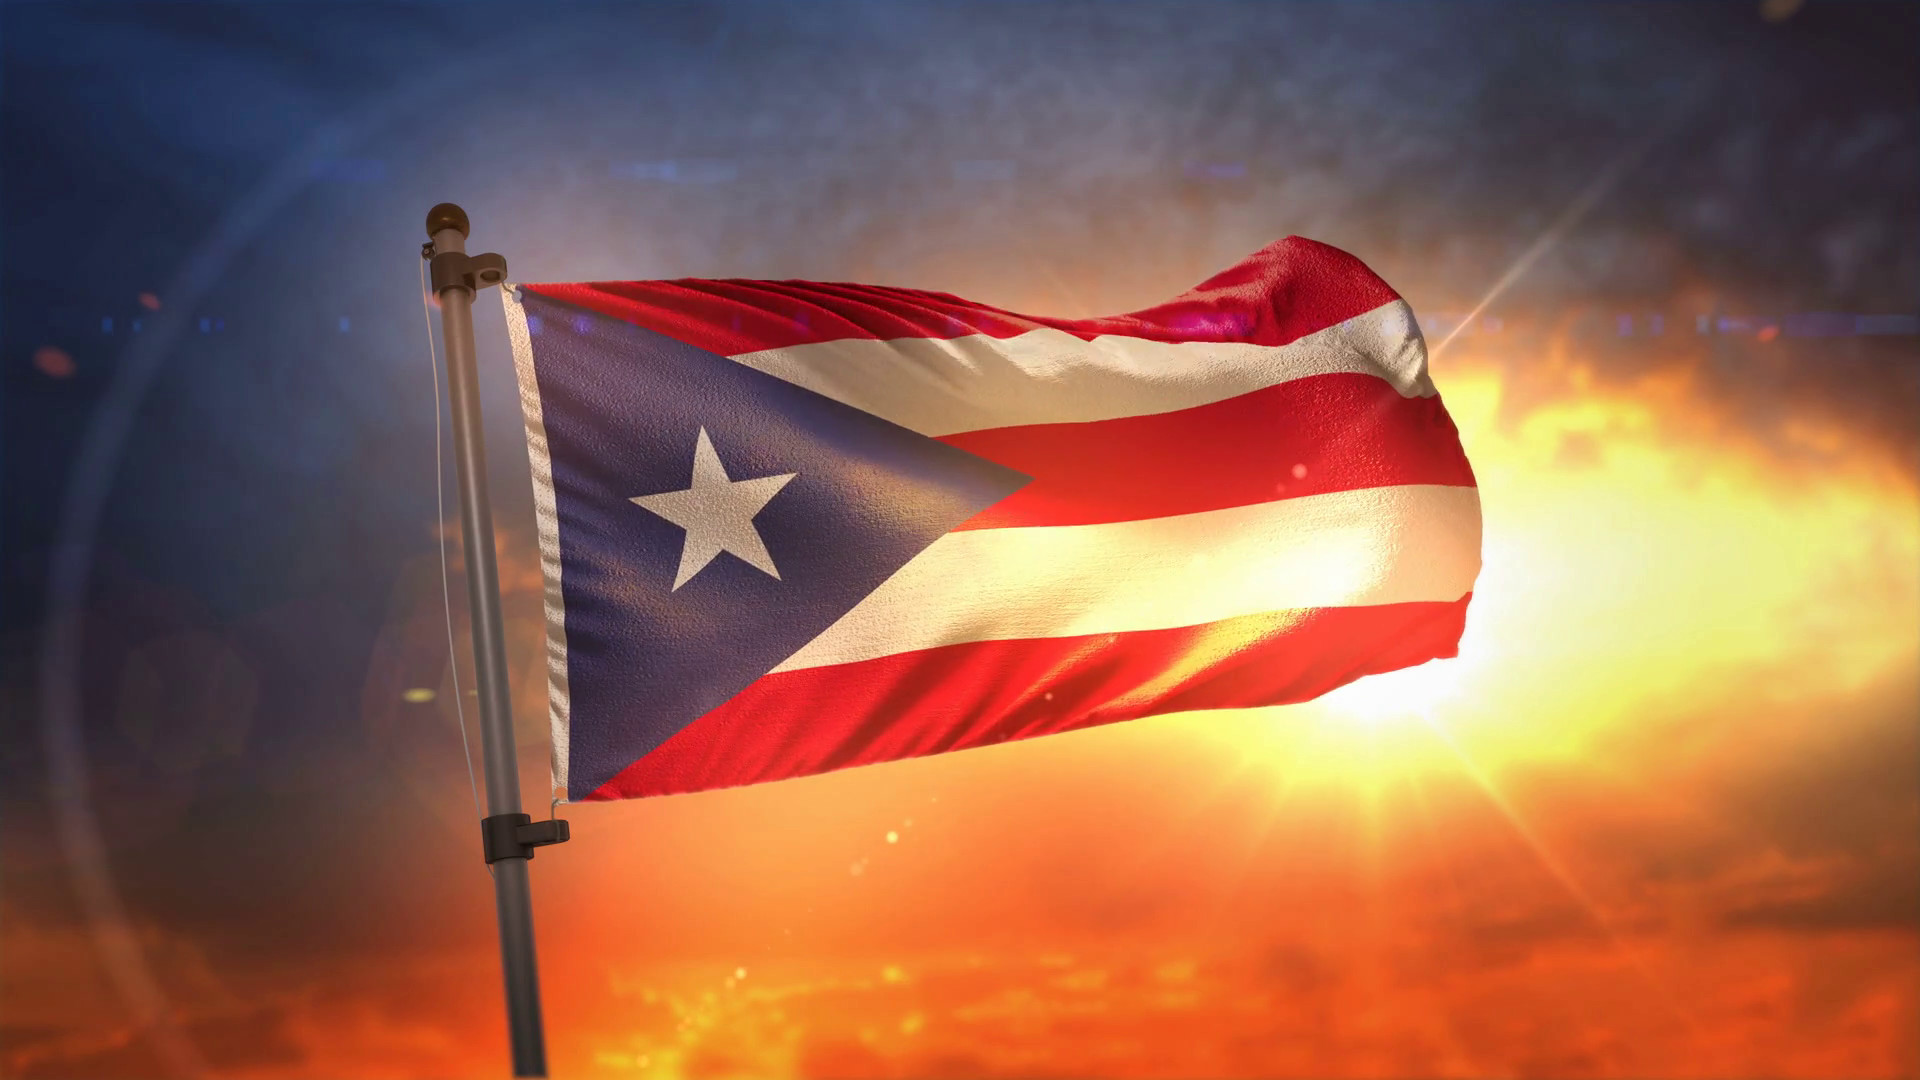 Puerto Rico Backgrounds (58+ Images